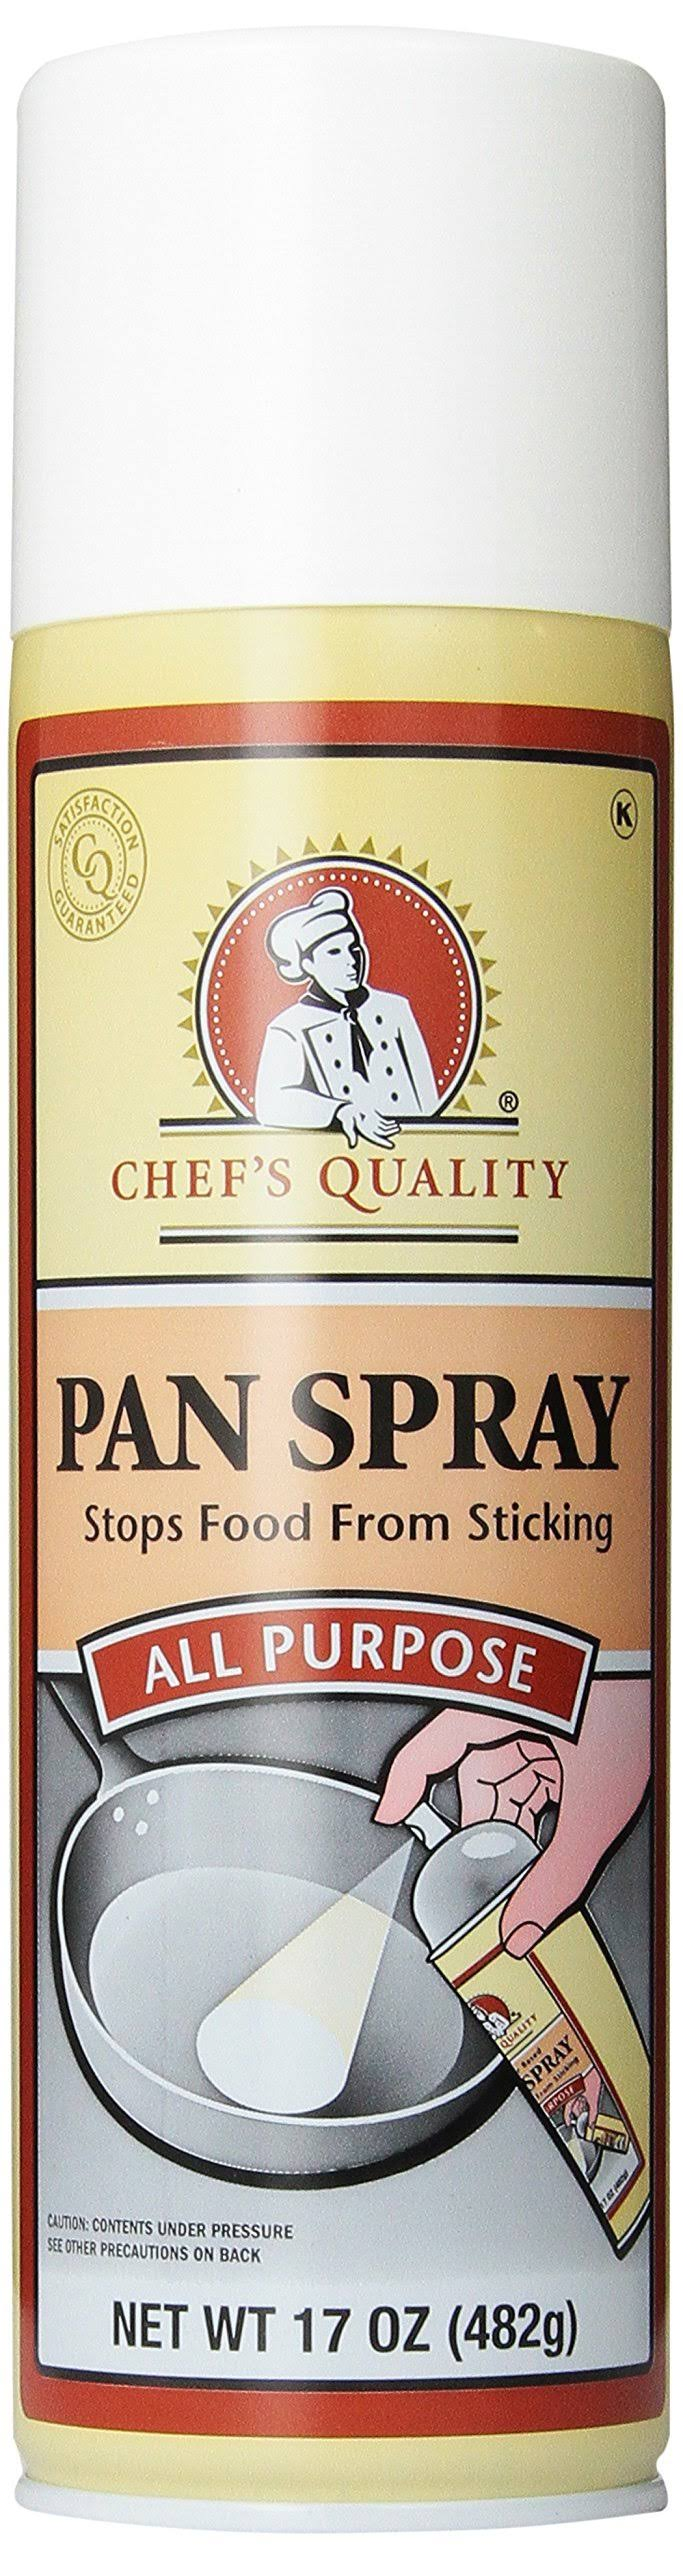 Chef's Quality Multi Purpose Pan Spray - 17oz